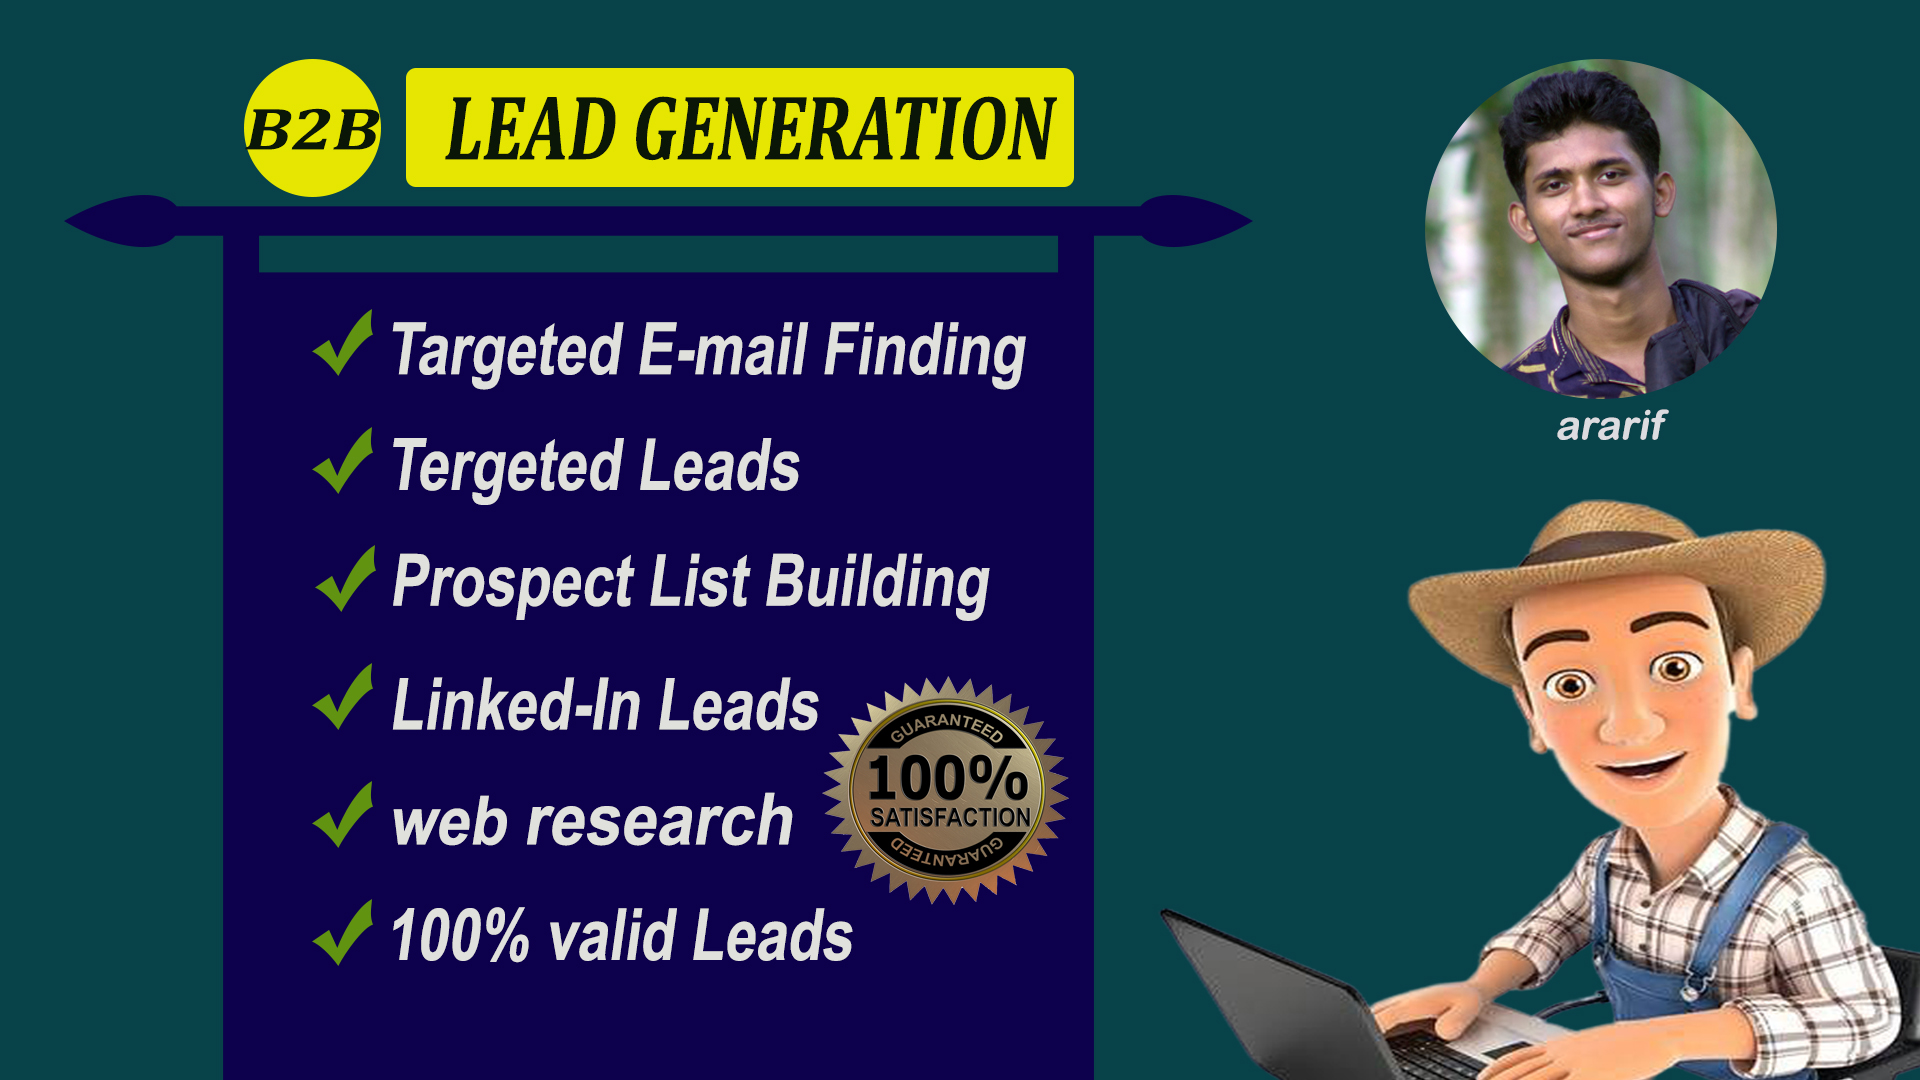 I will find targeted b2b leads and prospect list building